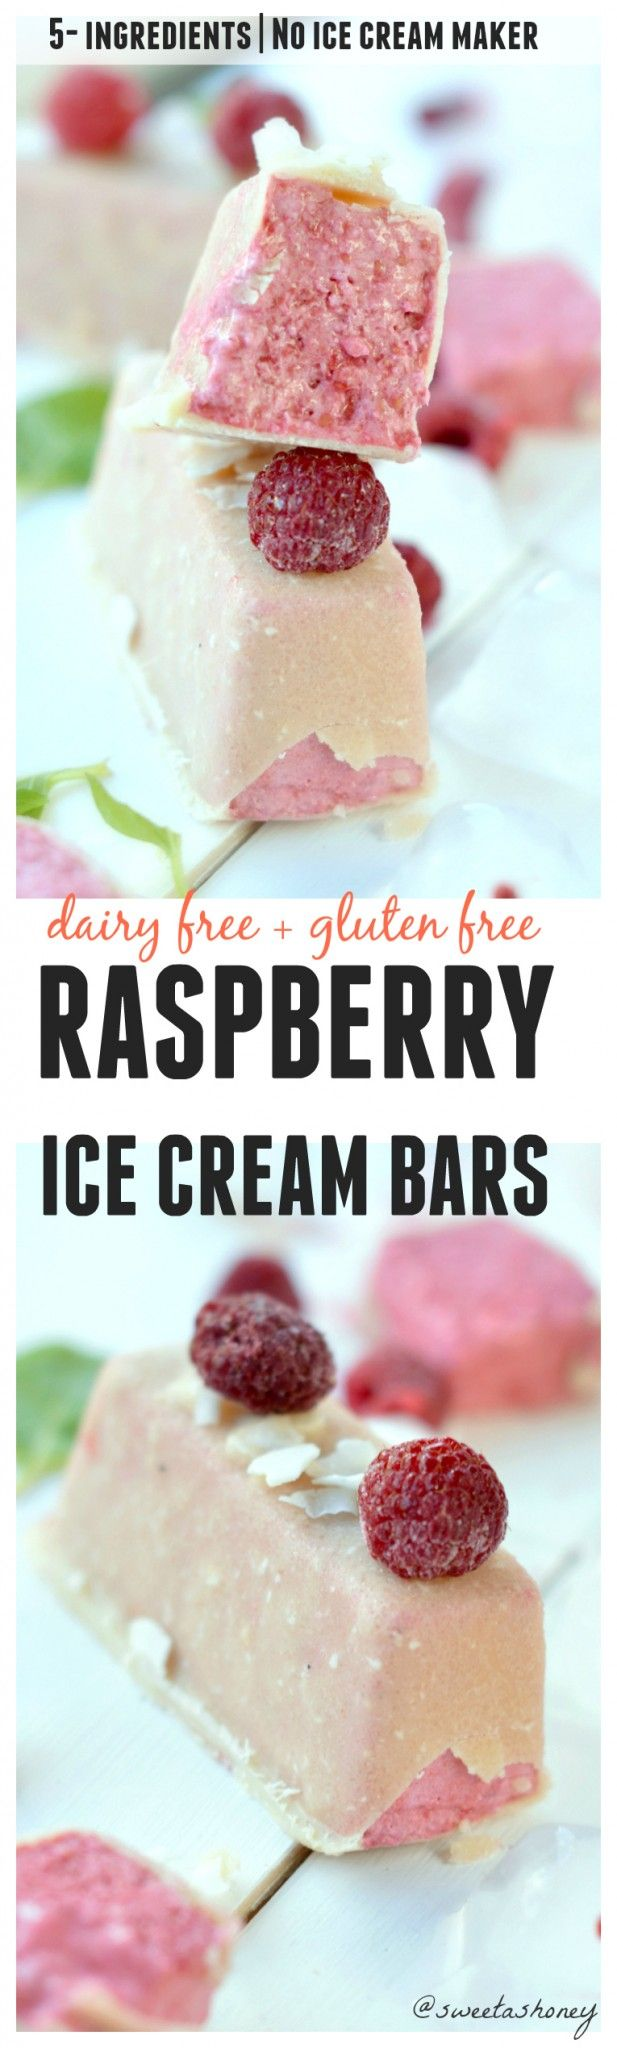 Creamy raspberry coconut ice cream bars.without ice cream makers. Only 5 ingredients! Clean eating ice cream! Vegan, gluten free, no refined sugar.